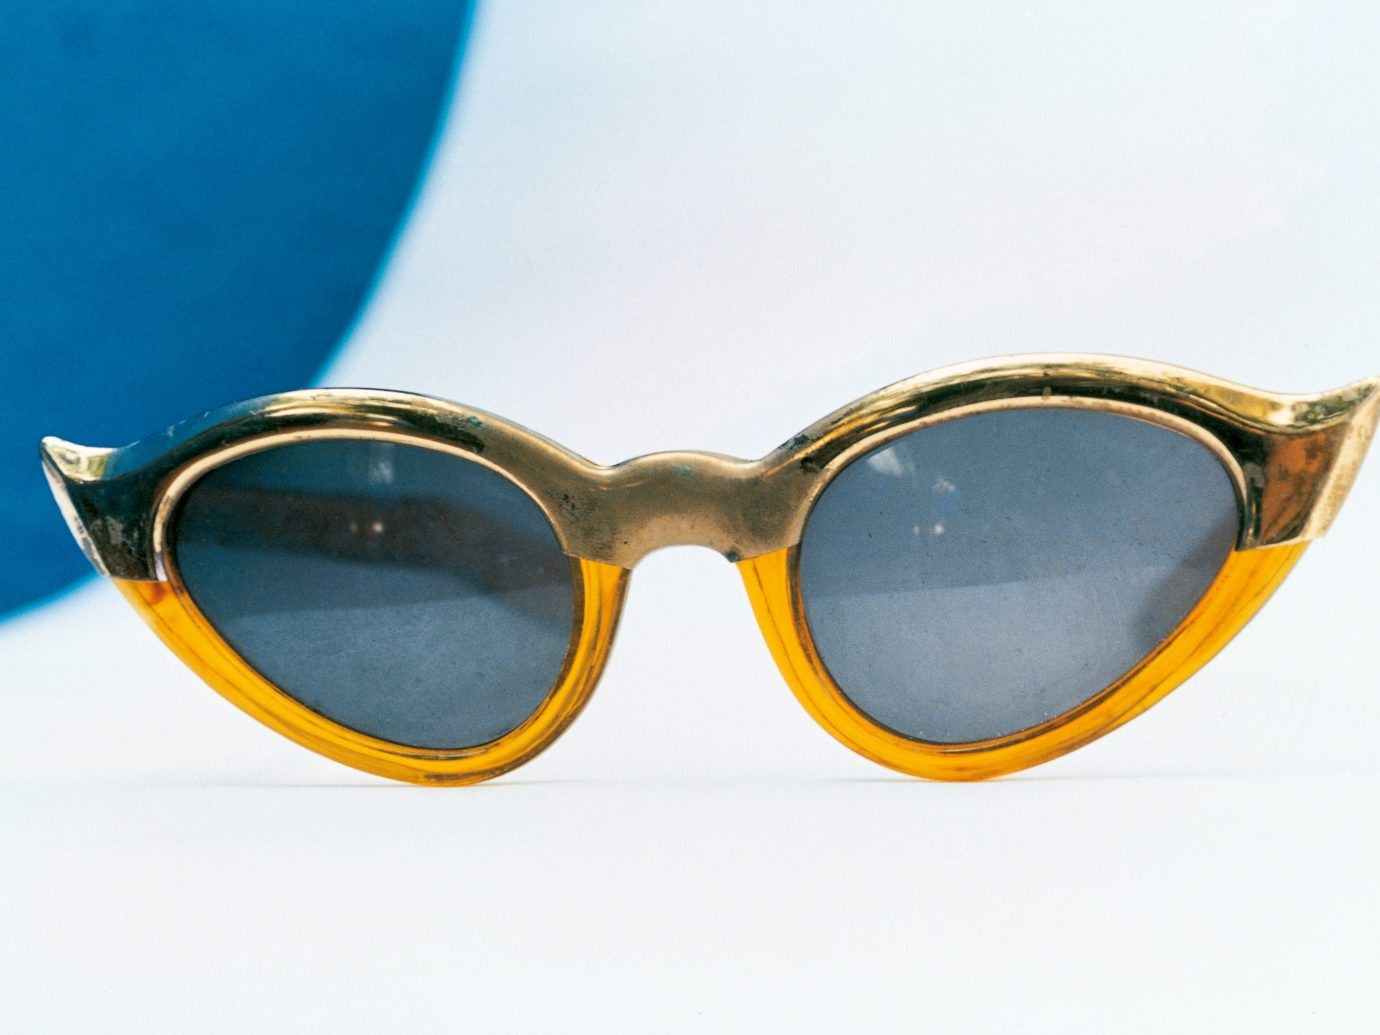 Arts + Culture spectacles accessory goggles eyewear sunglasses glasses vision care fashion accessory yellow enamel